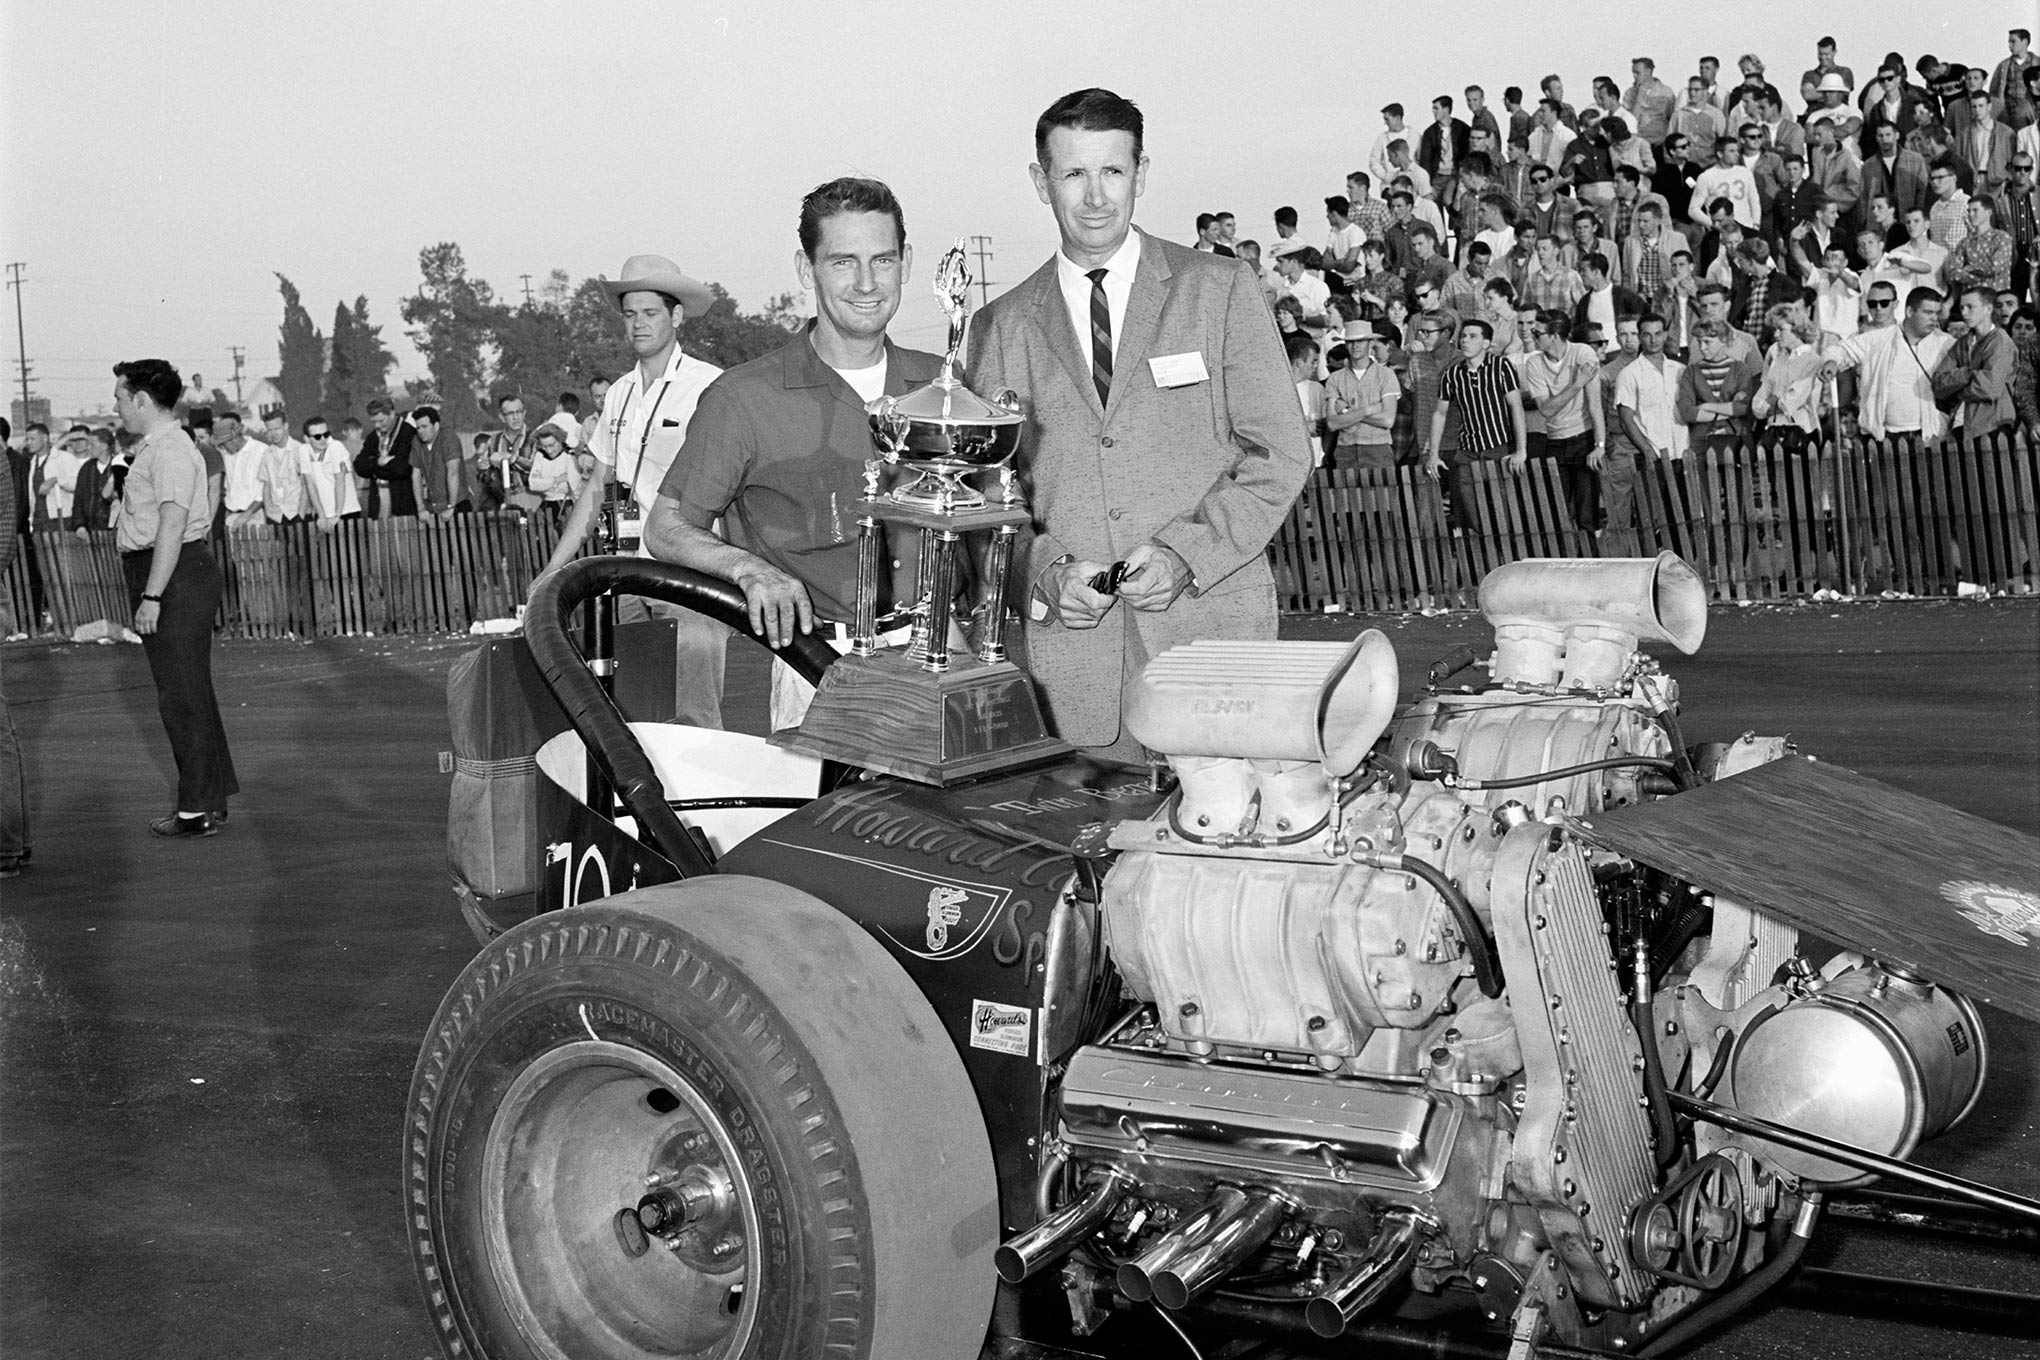 Top Eliminator honors went to Jack Chrisman and the Howard Cams Special with its plywood aerodynamics and twin-Olds power featuring new roller cams. Tuning was 16-year-old Jerry Johannson. This is Chrisman getting the trophy from NHRA President Wally Parks, with HOT ROD's Tex Smith in the cowboy hat just to the left.